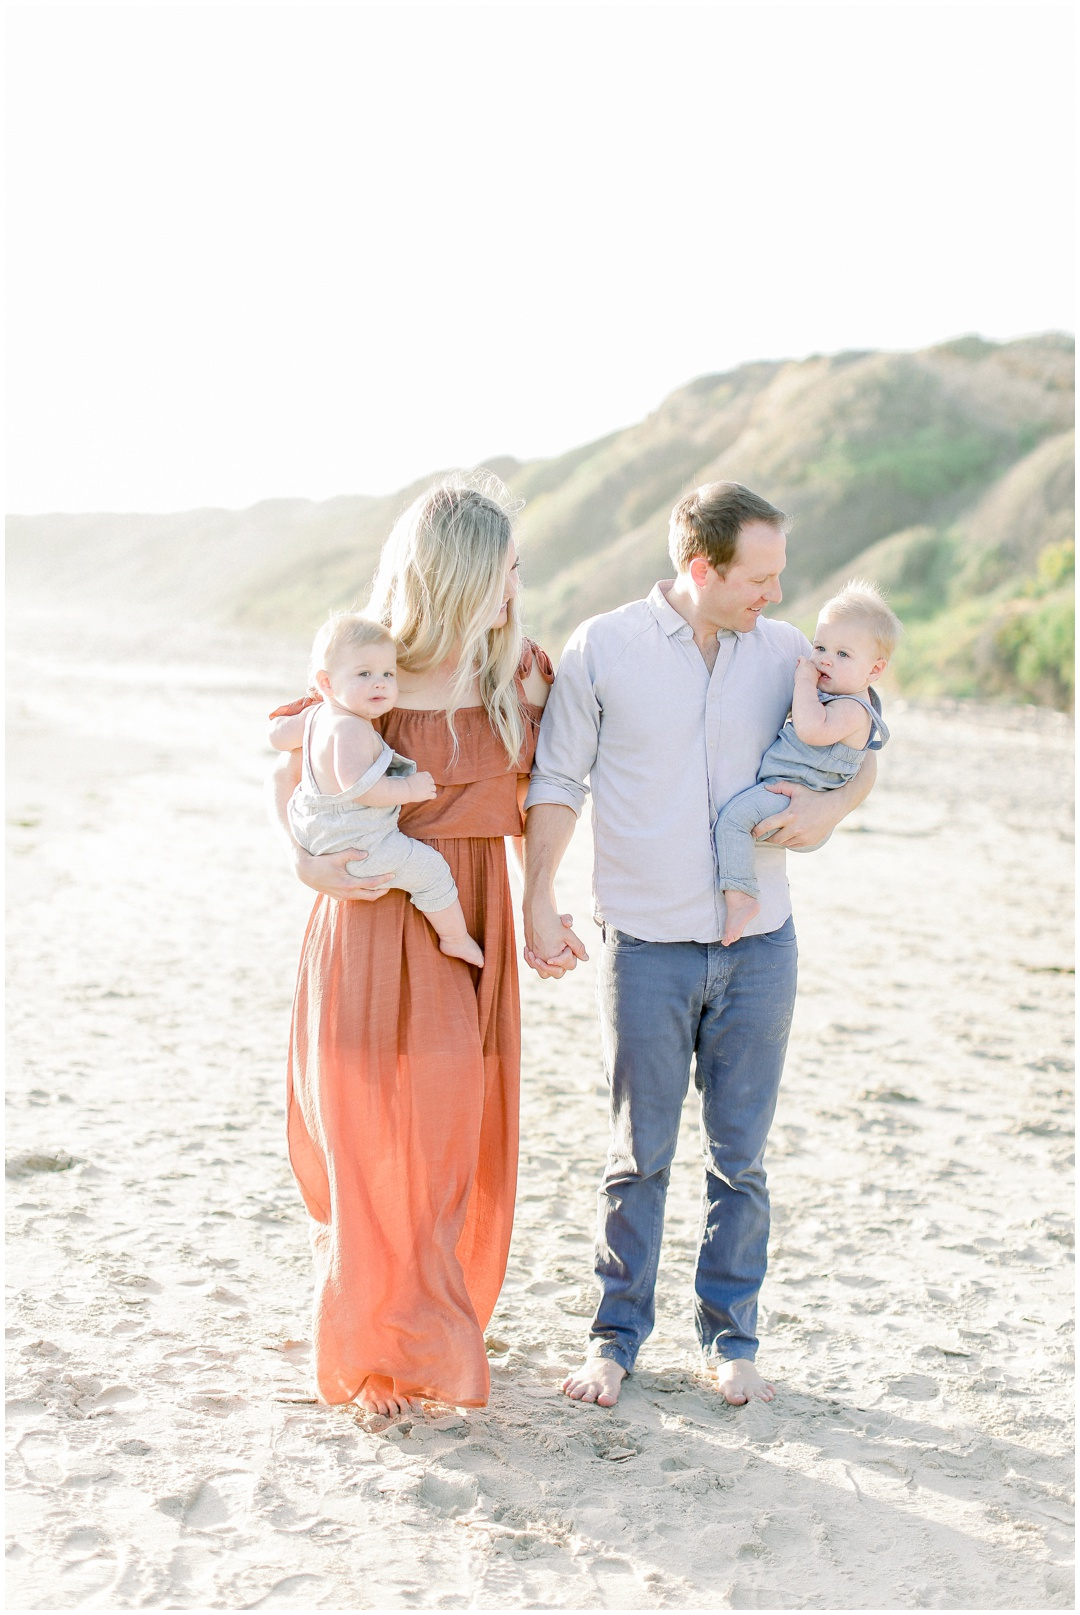 Newport_Beach_Newborn_Light_Airy_Natural_Photographer_Newport_Beach_Photographer_Orange_County_Family_Photographer_Cori_Kleckner_Photography_Huntington_Beach_Photographer_Family_OC_Newborn_Kelly_Bandak_Nik_Bandak__3535.jpg